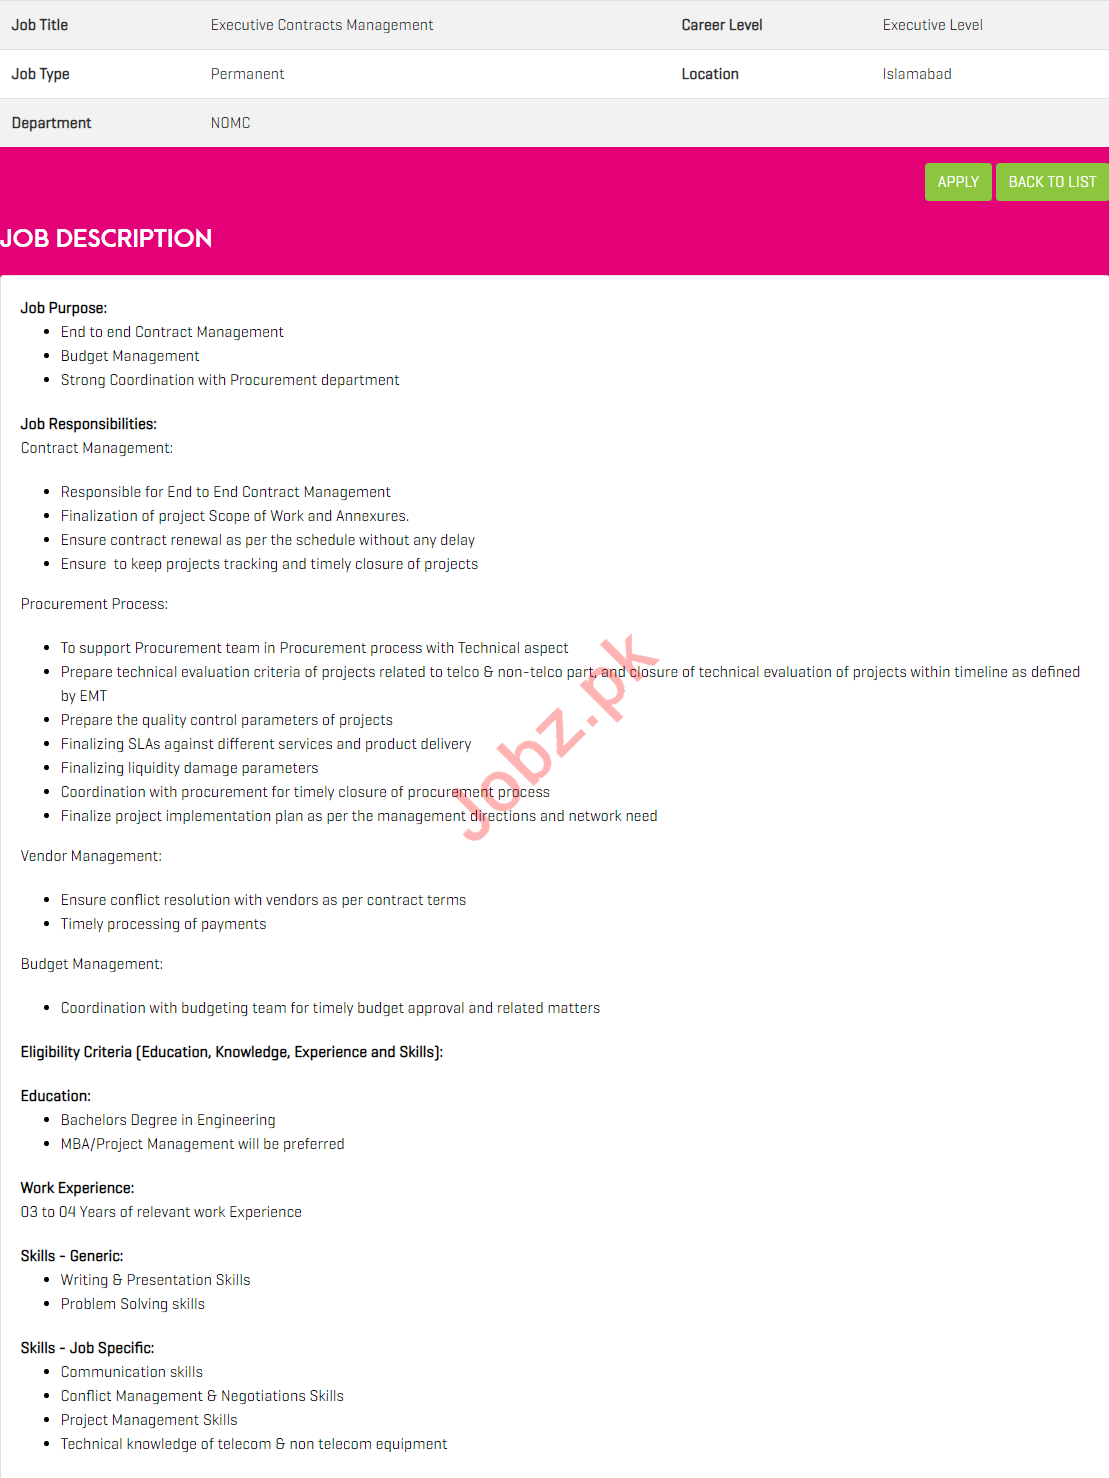 Executive Contracts Management Jobs 2019 in Zong Pakistan